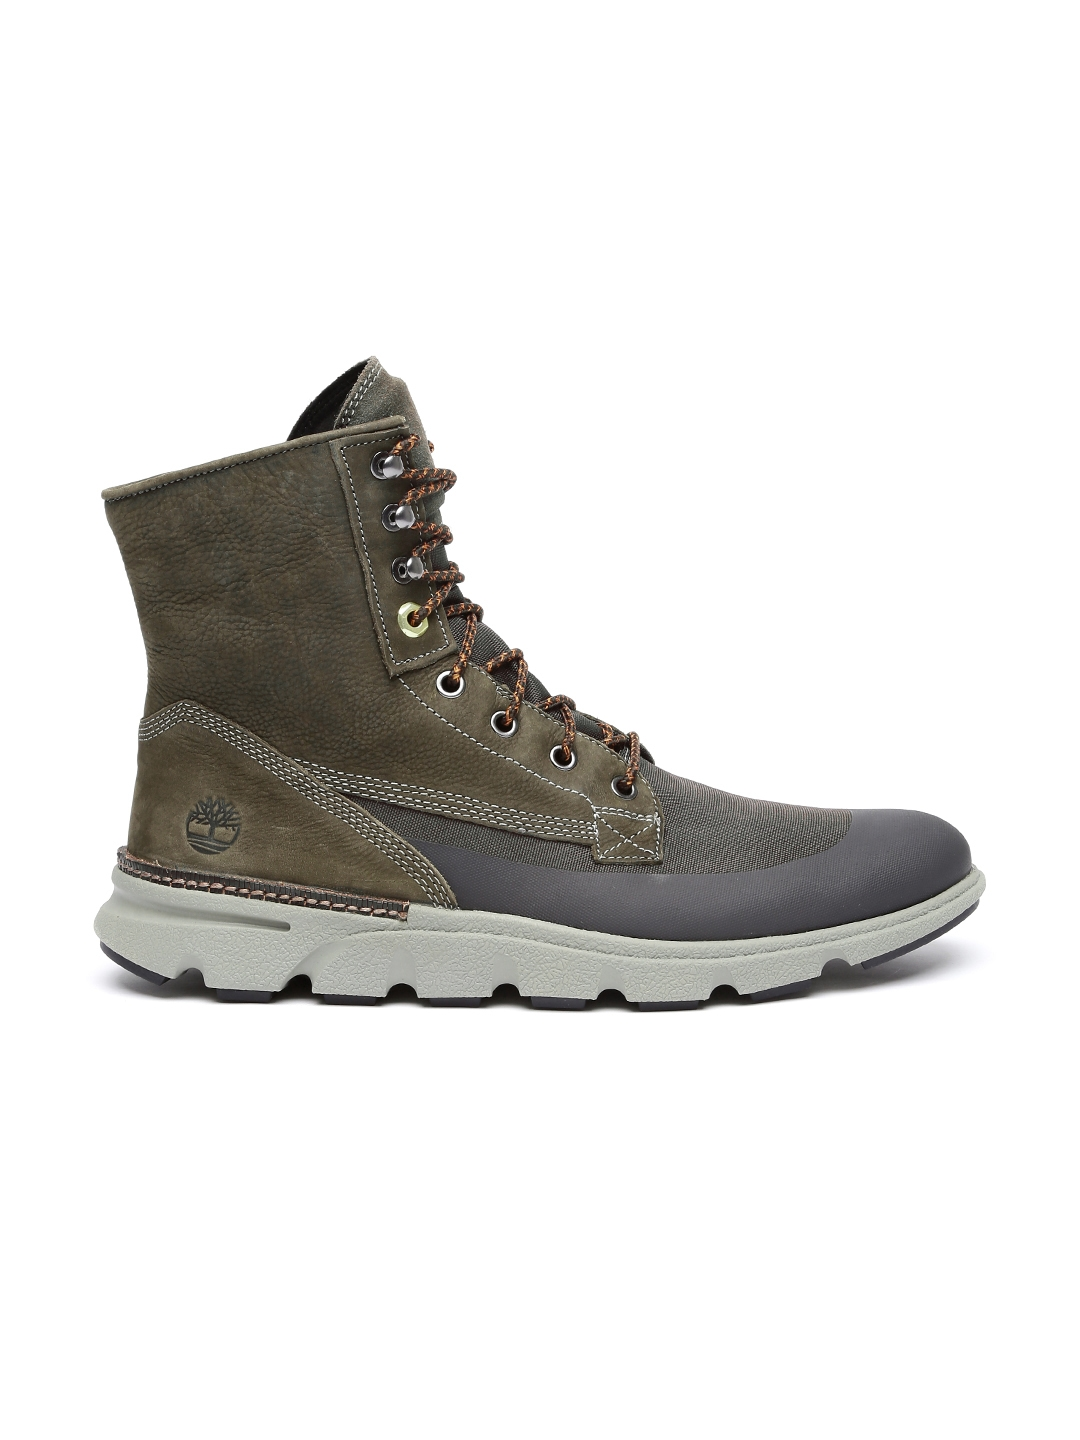 3e86b22a2e5c26 Buy Timberland Men Olive Green Solid Leather Mid Top Flat Boots ...